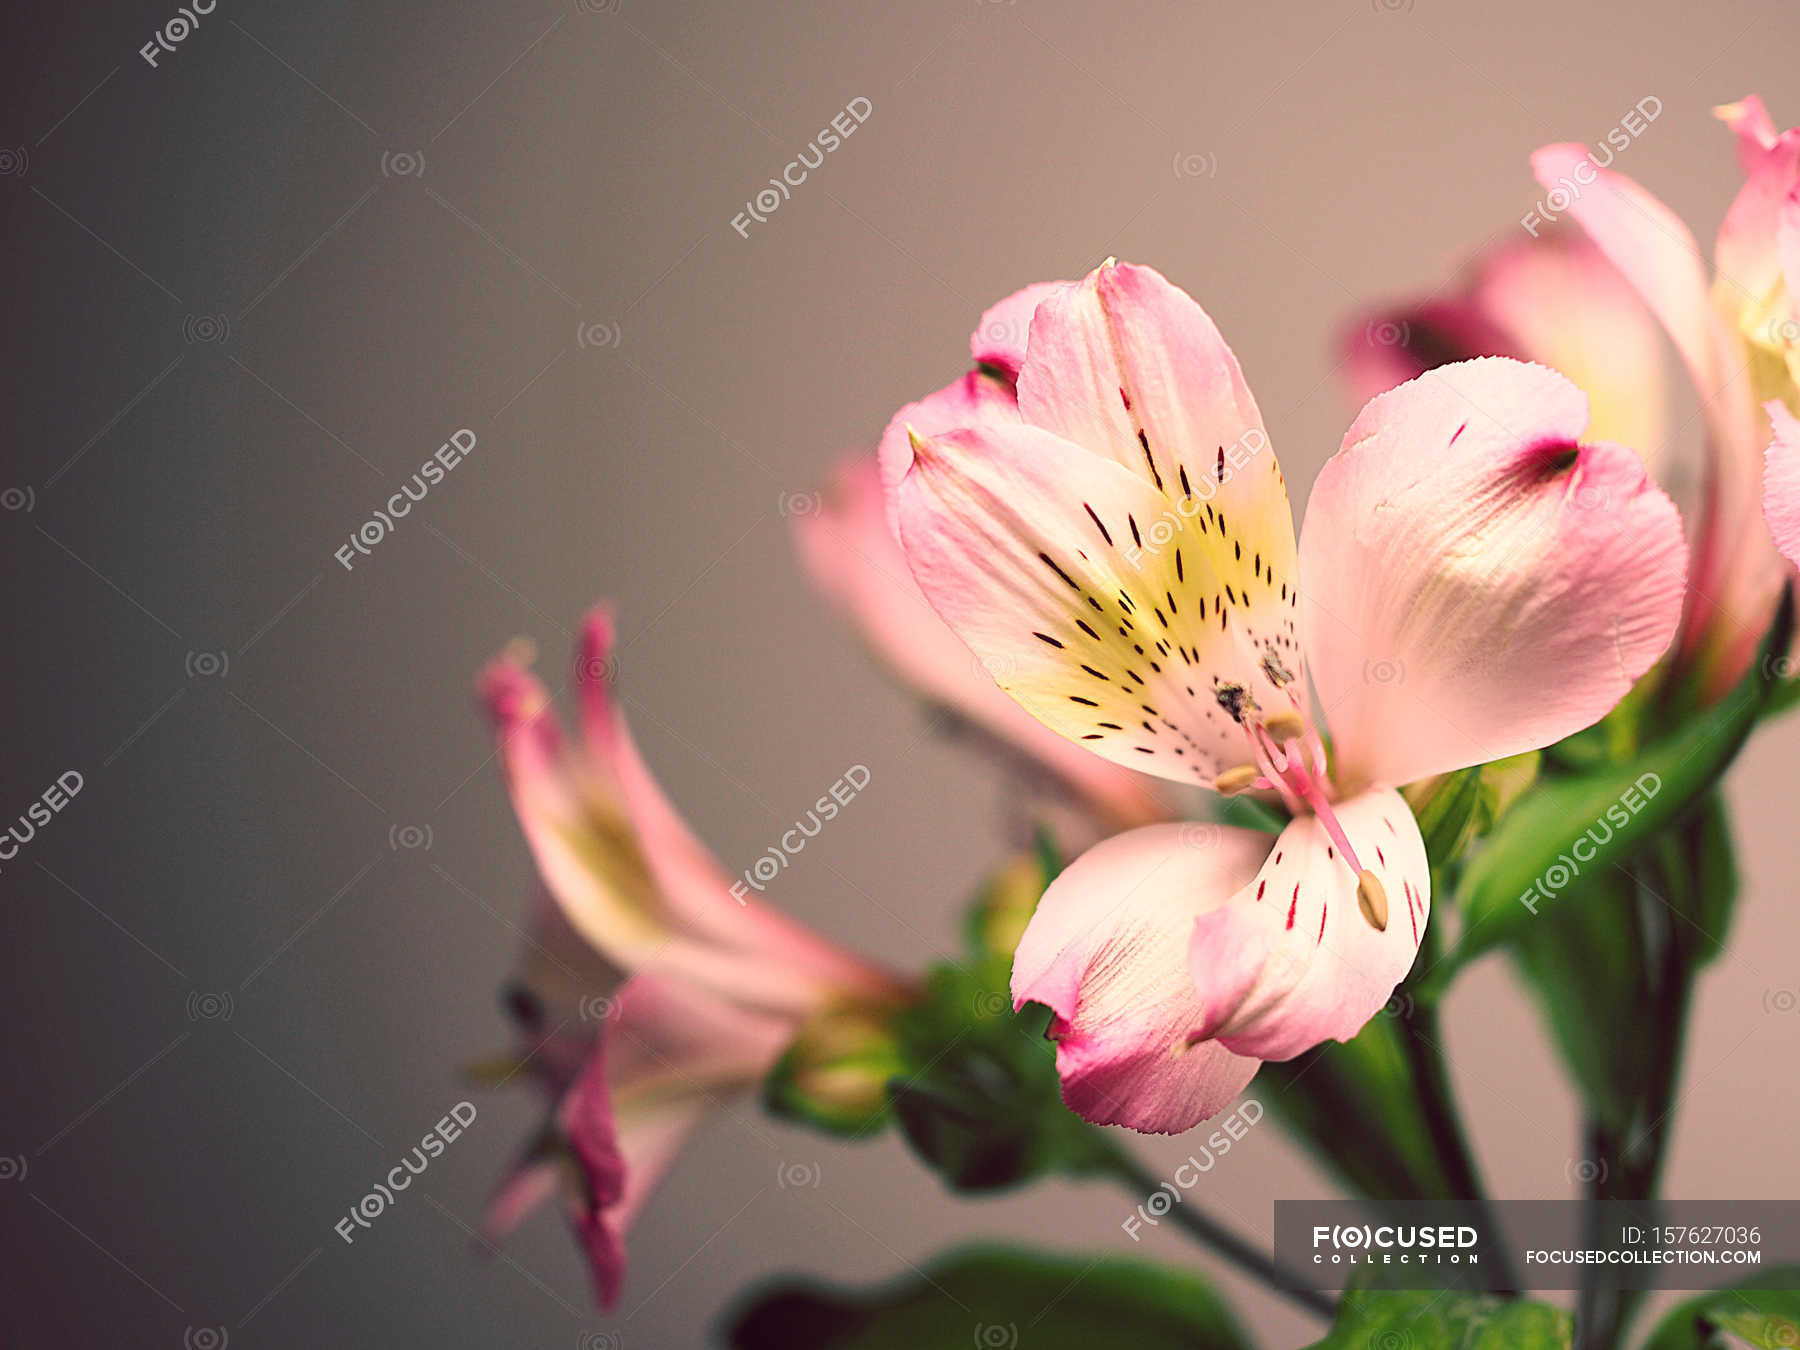 Pink spotted lily flowers stock photo 157627036 izmirmasajfo